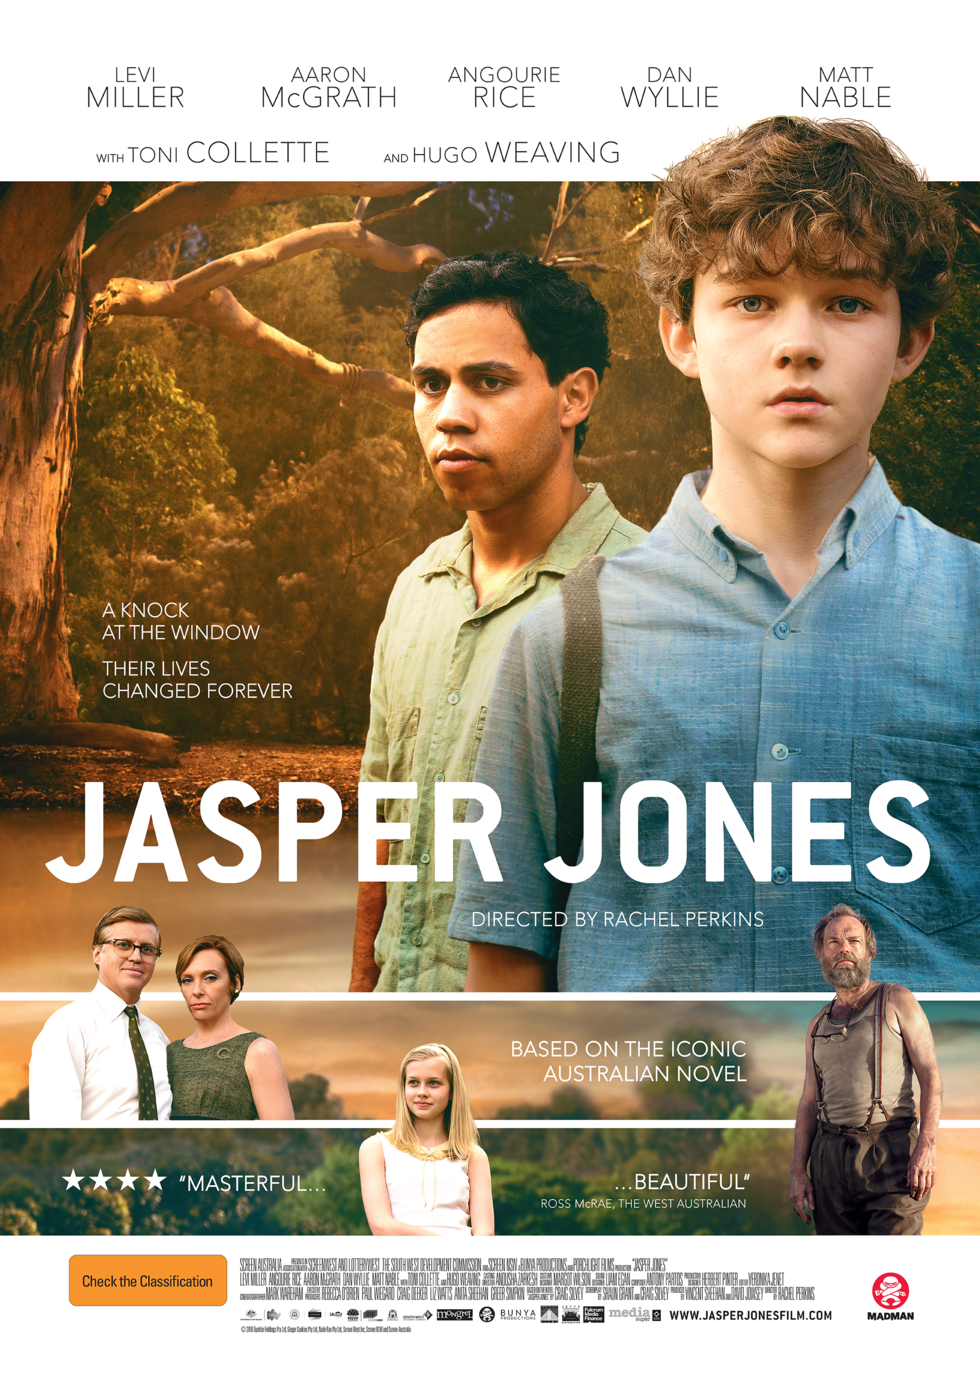 Win tickets to Jasper Jones